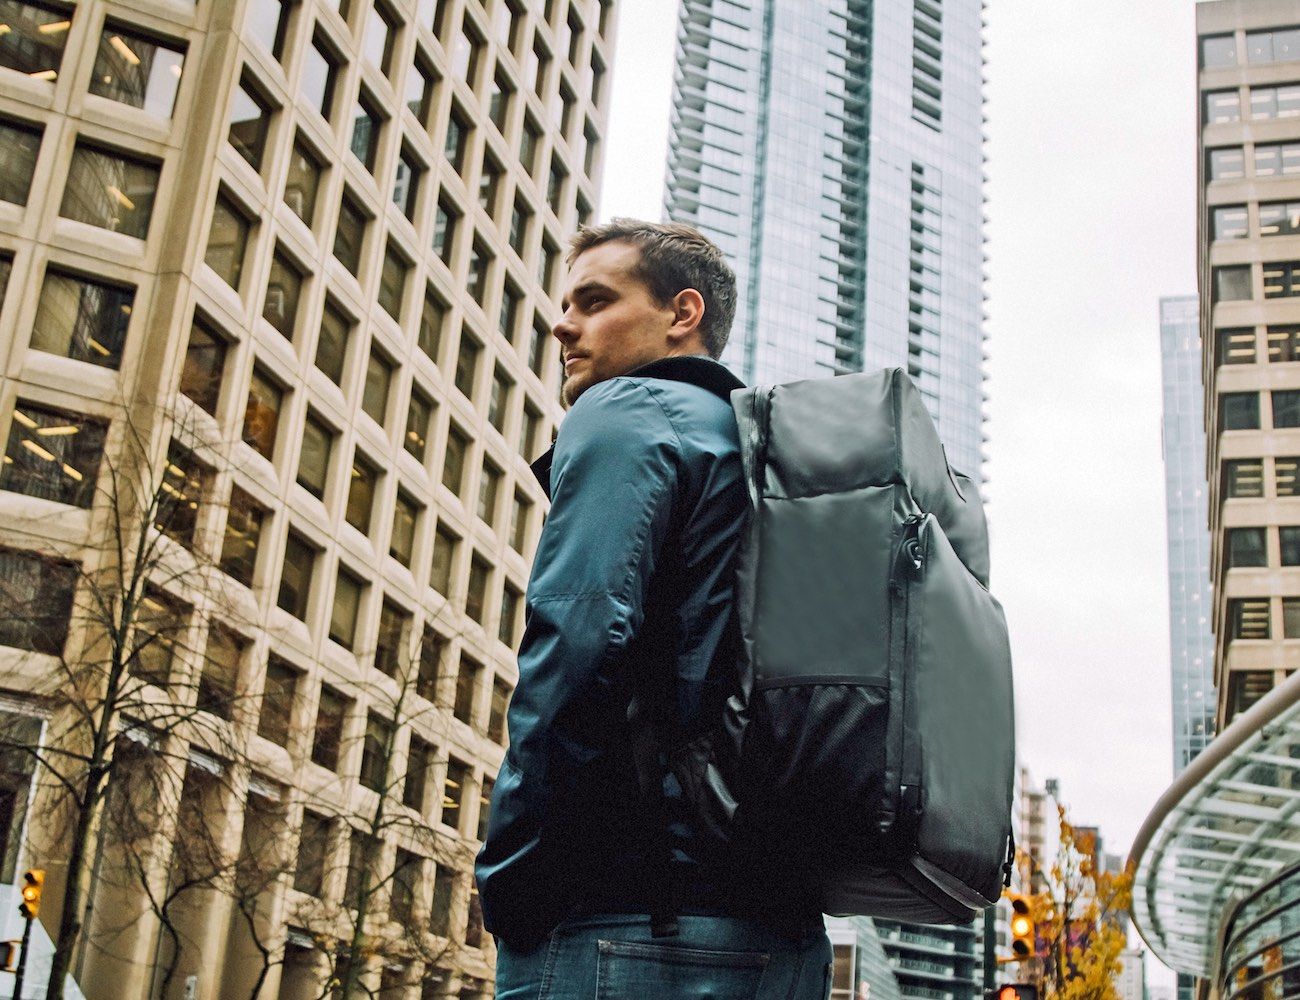 World's Best Carry-on / Backpack Luggage with Built in Shelf